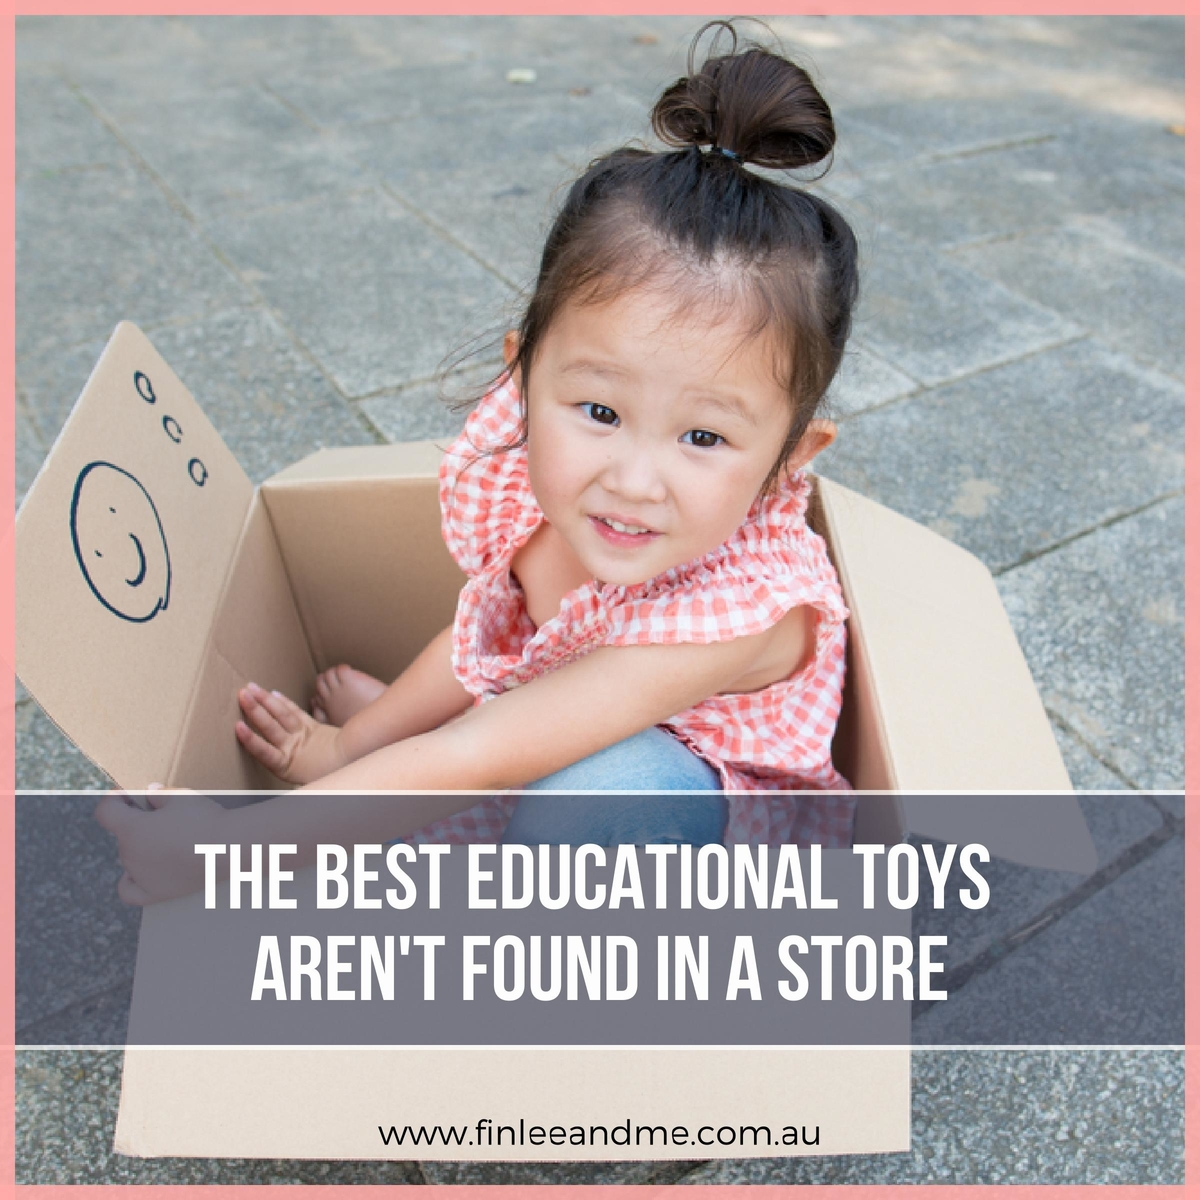 The Best Learning Toys for Toddlers Aren't Found in a Store